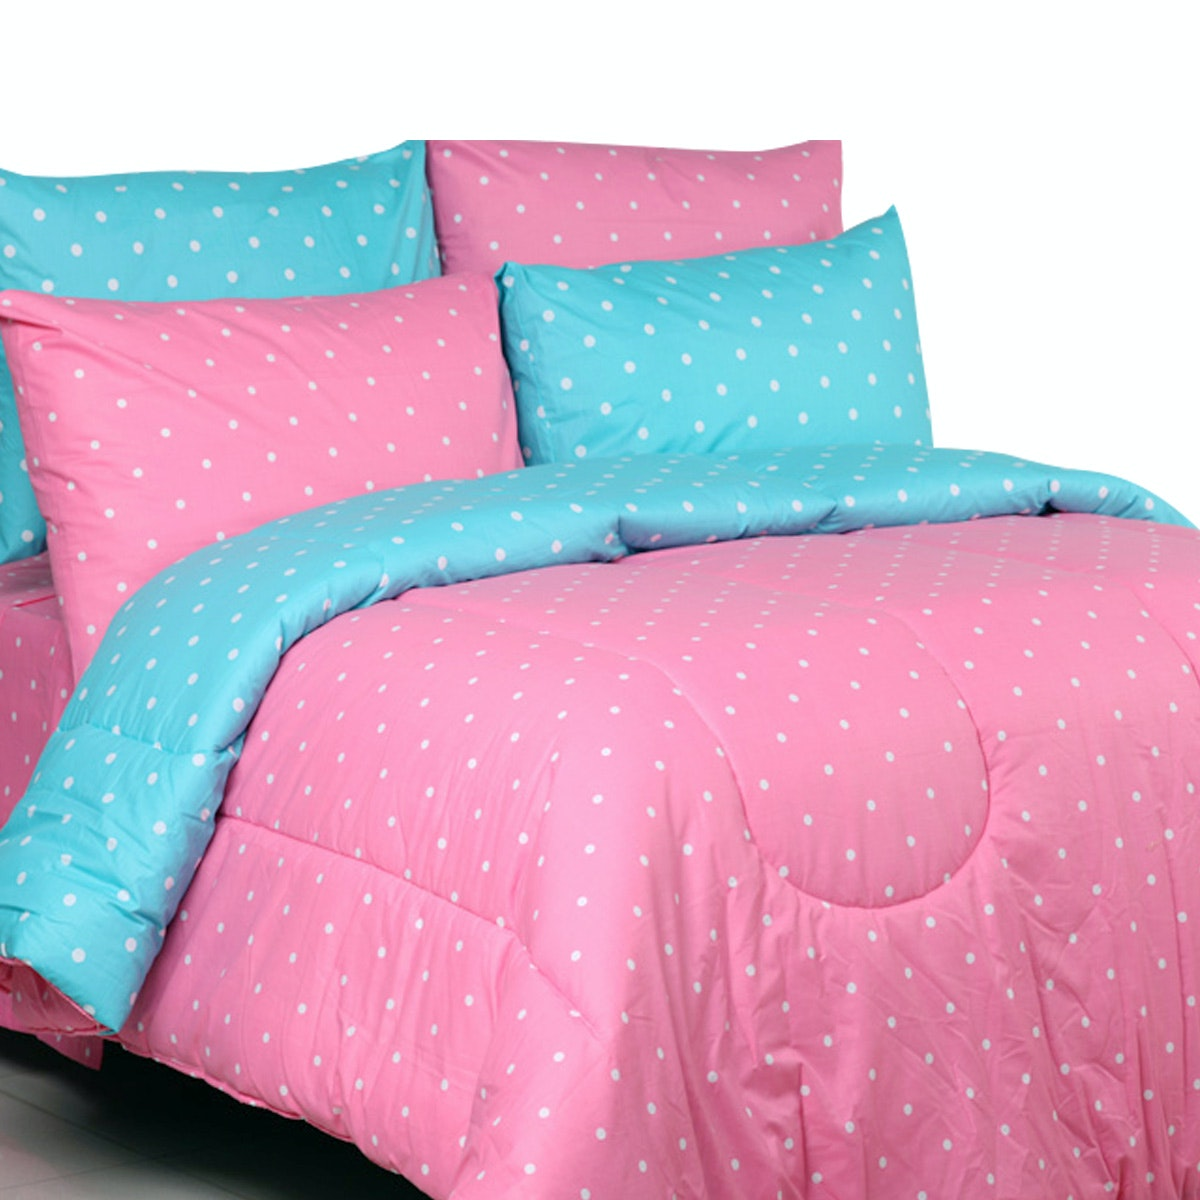 Sierra Bed Cover Dan Sprei Dottie Candy Mix Dottie Tosca 100x200